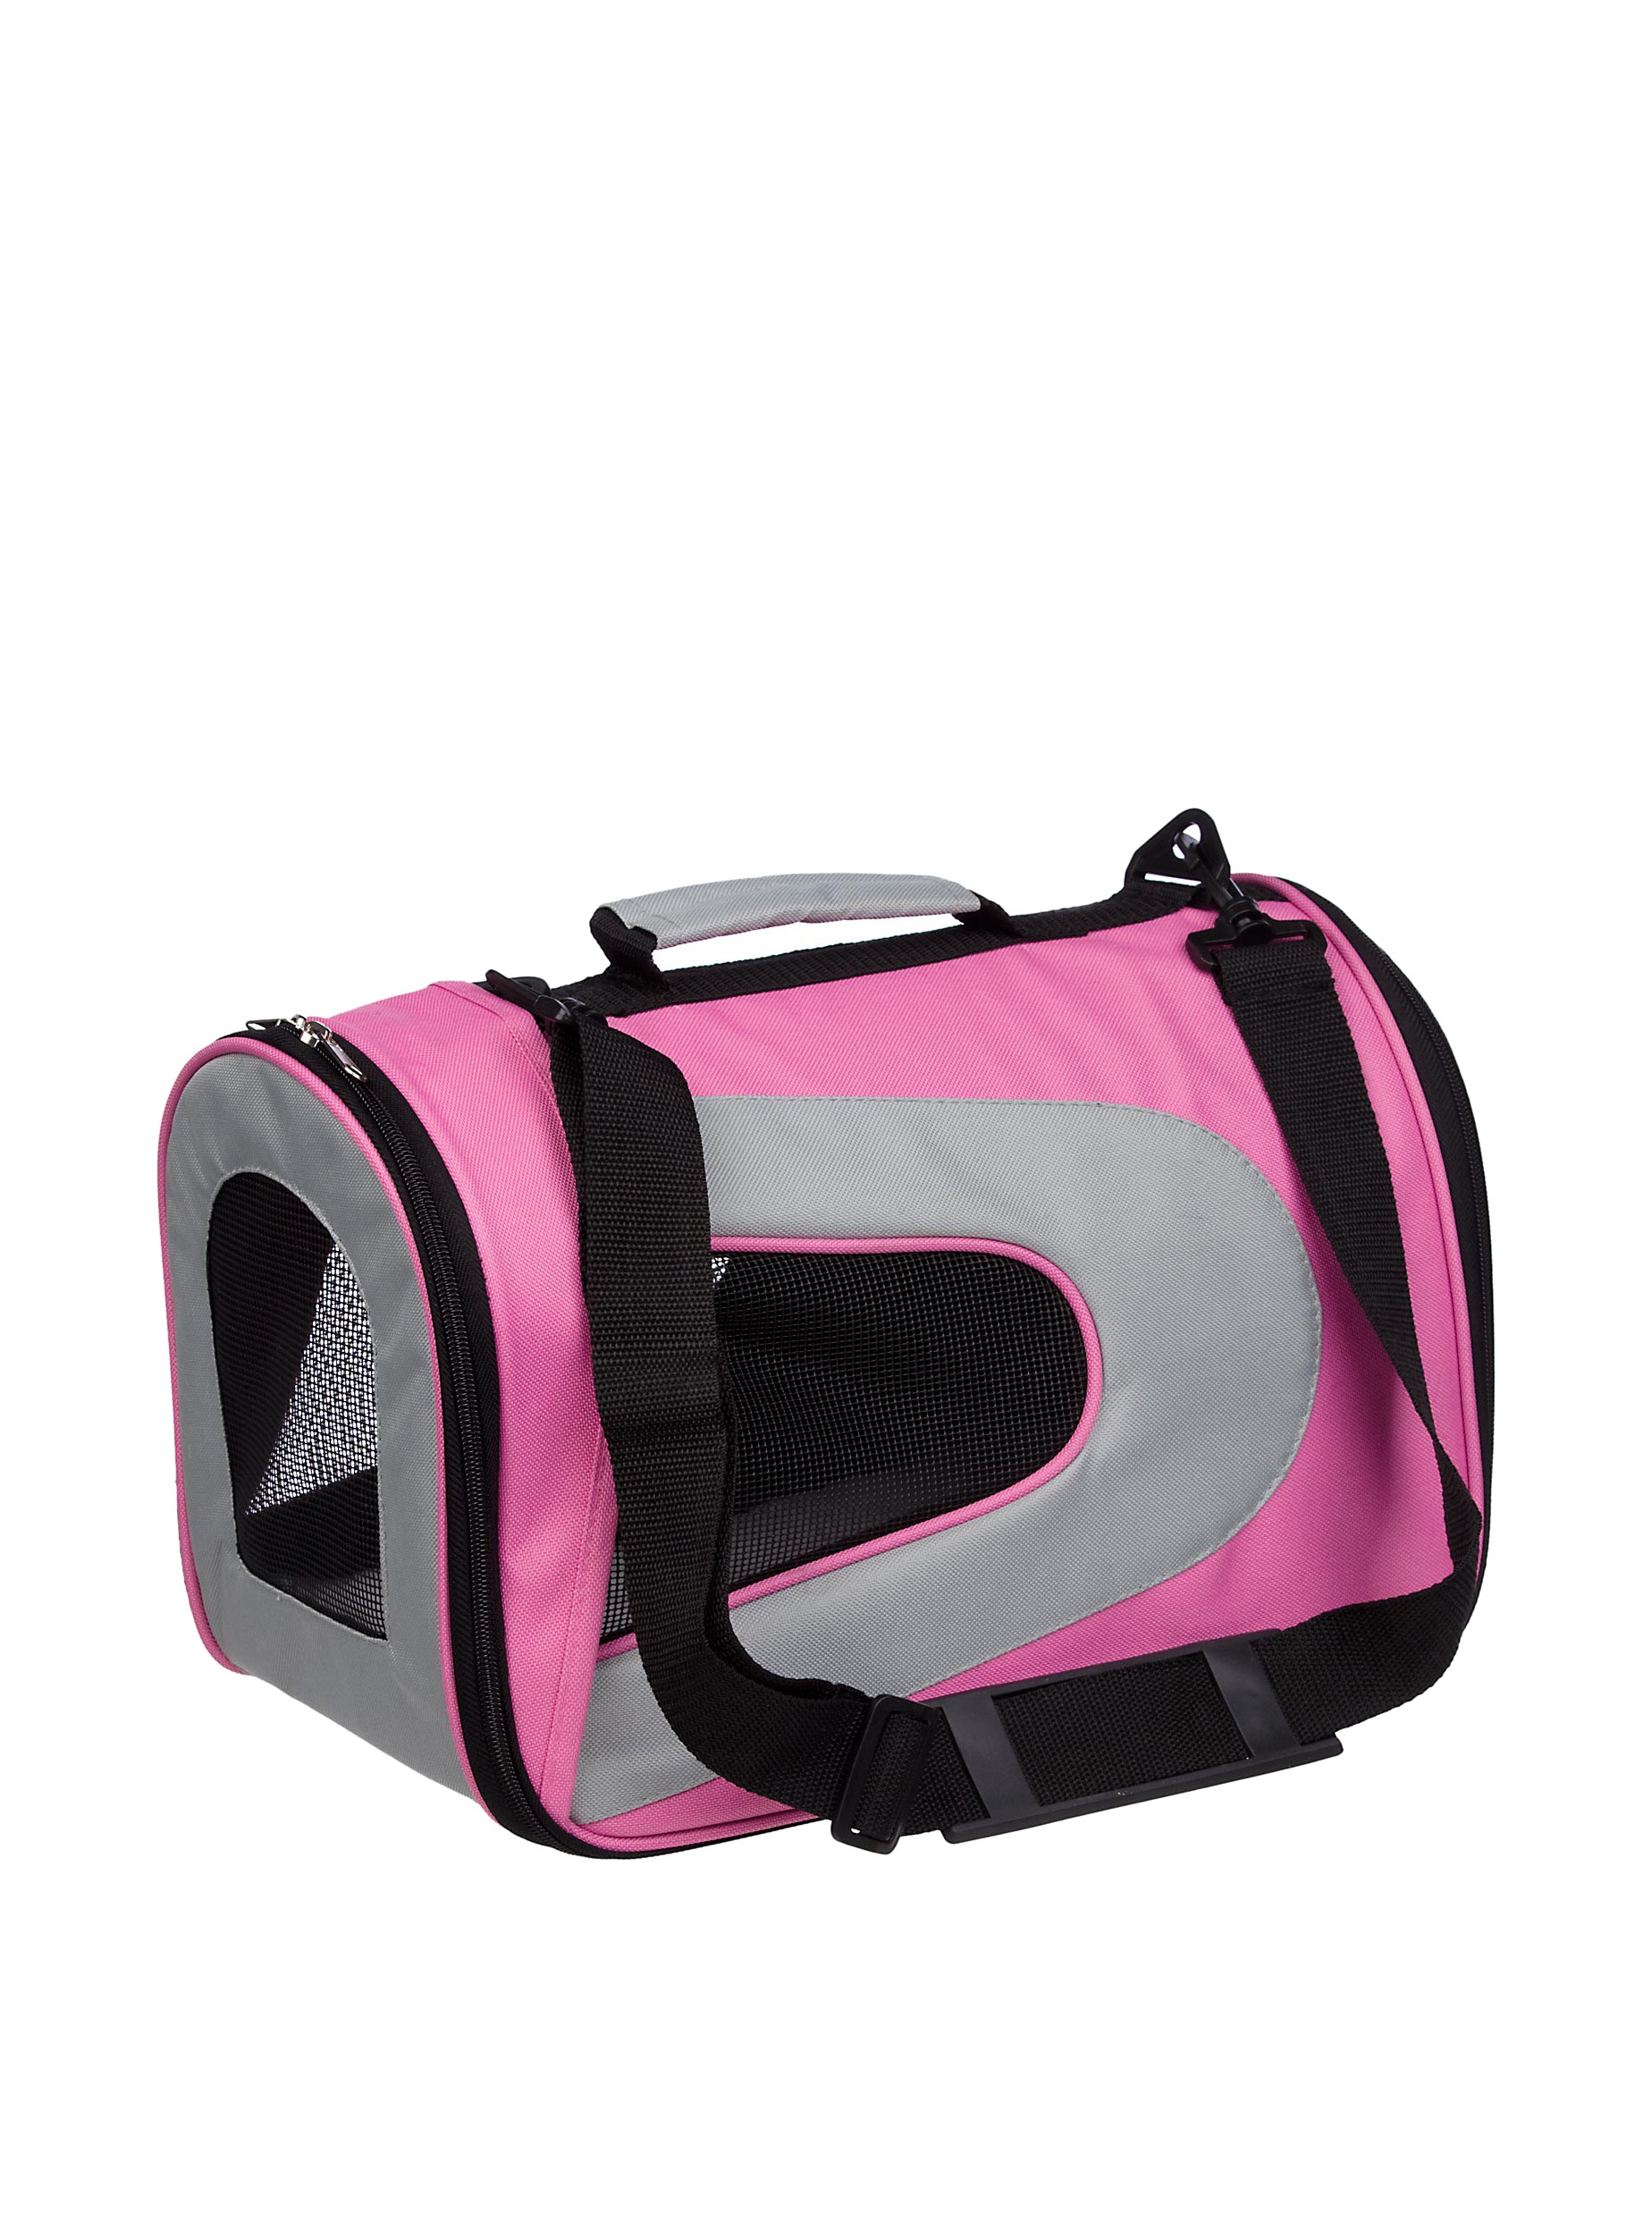 Pet Life Sporty Mesh Carrier (Pink/Grey)